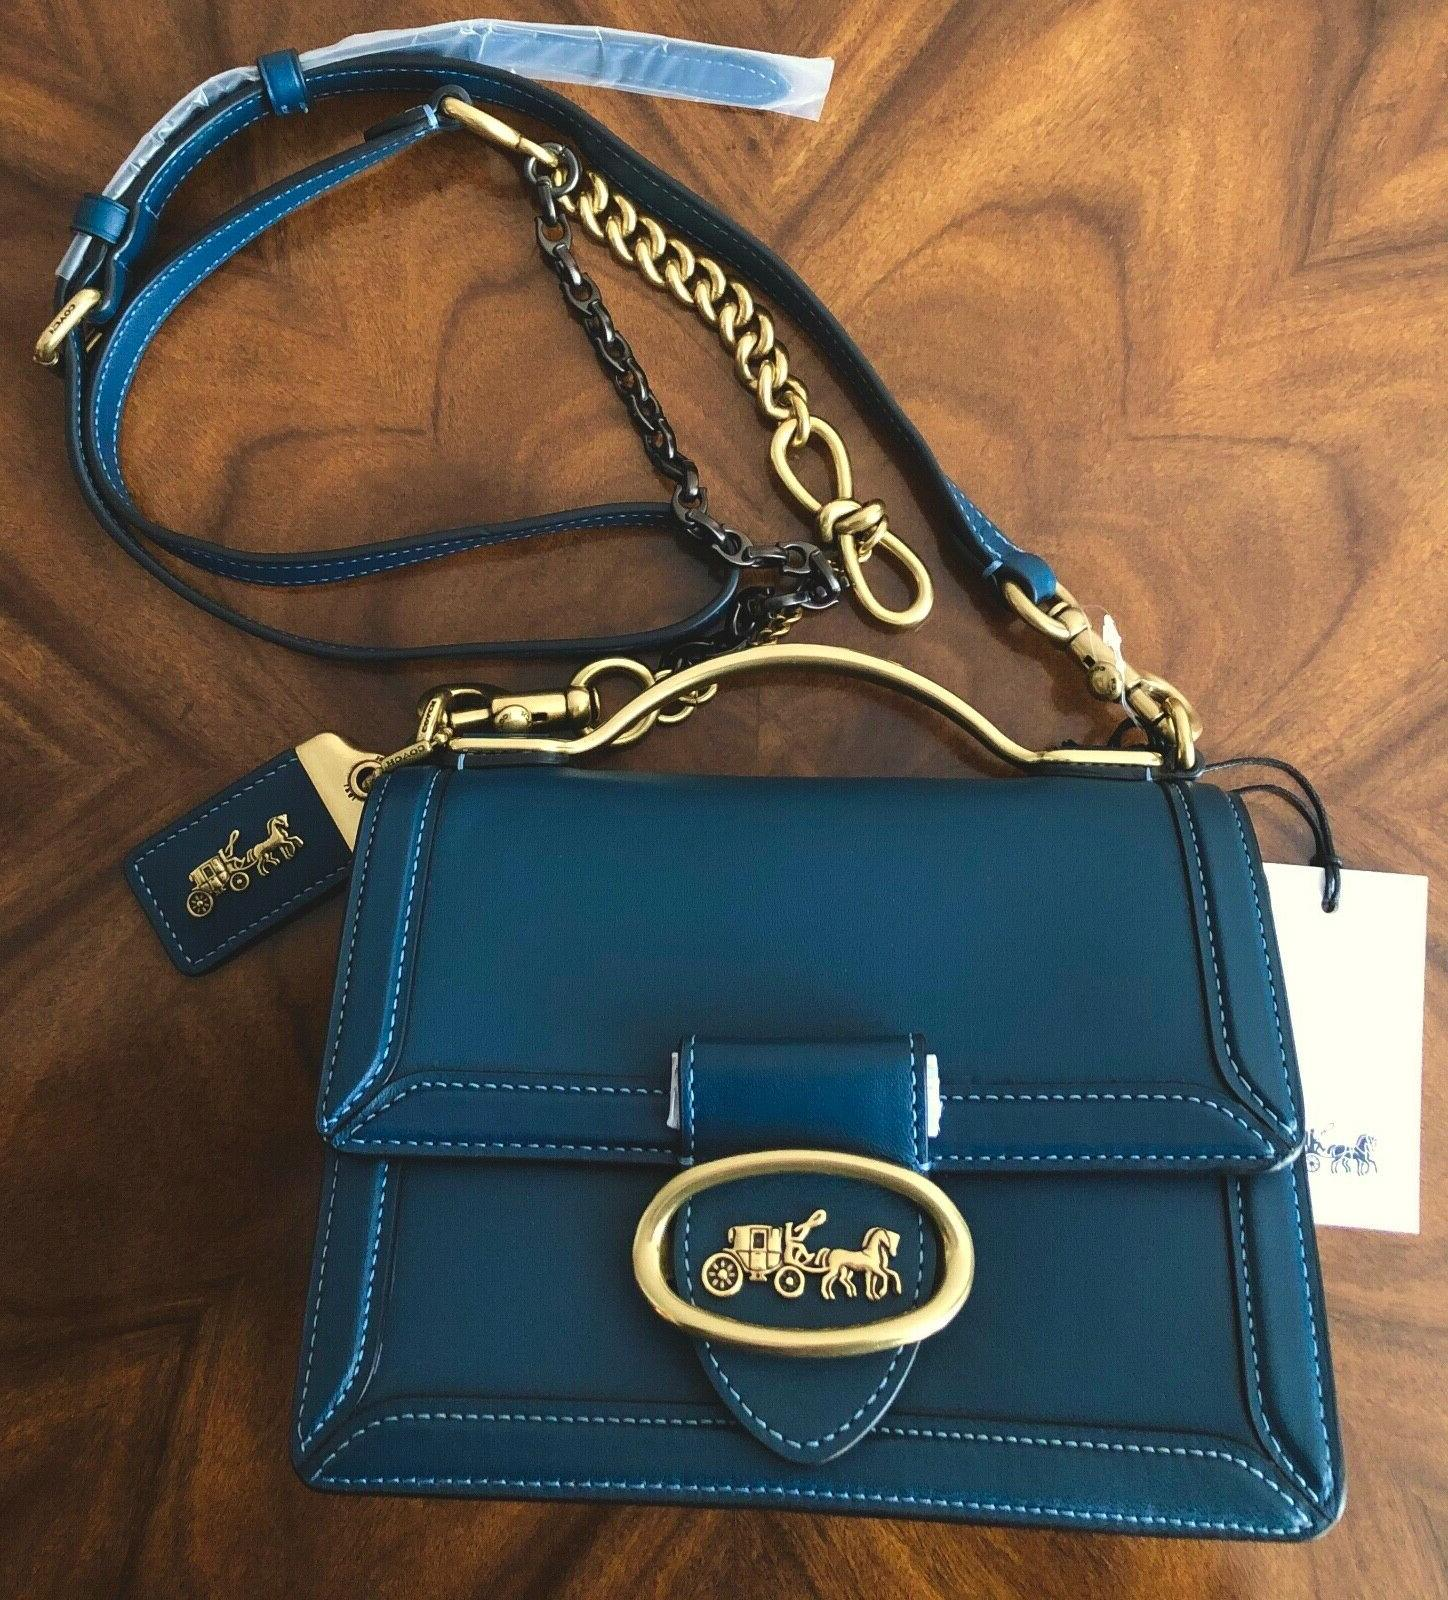 sold out nwt 1941 peacock leather riley